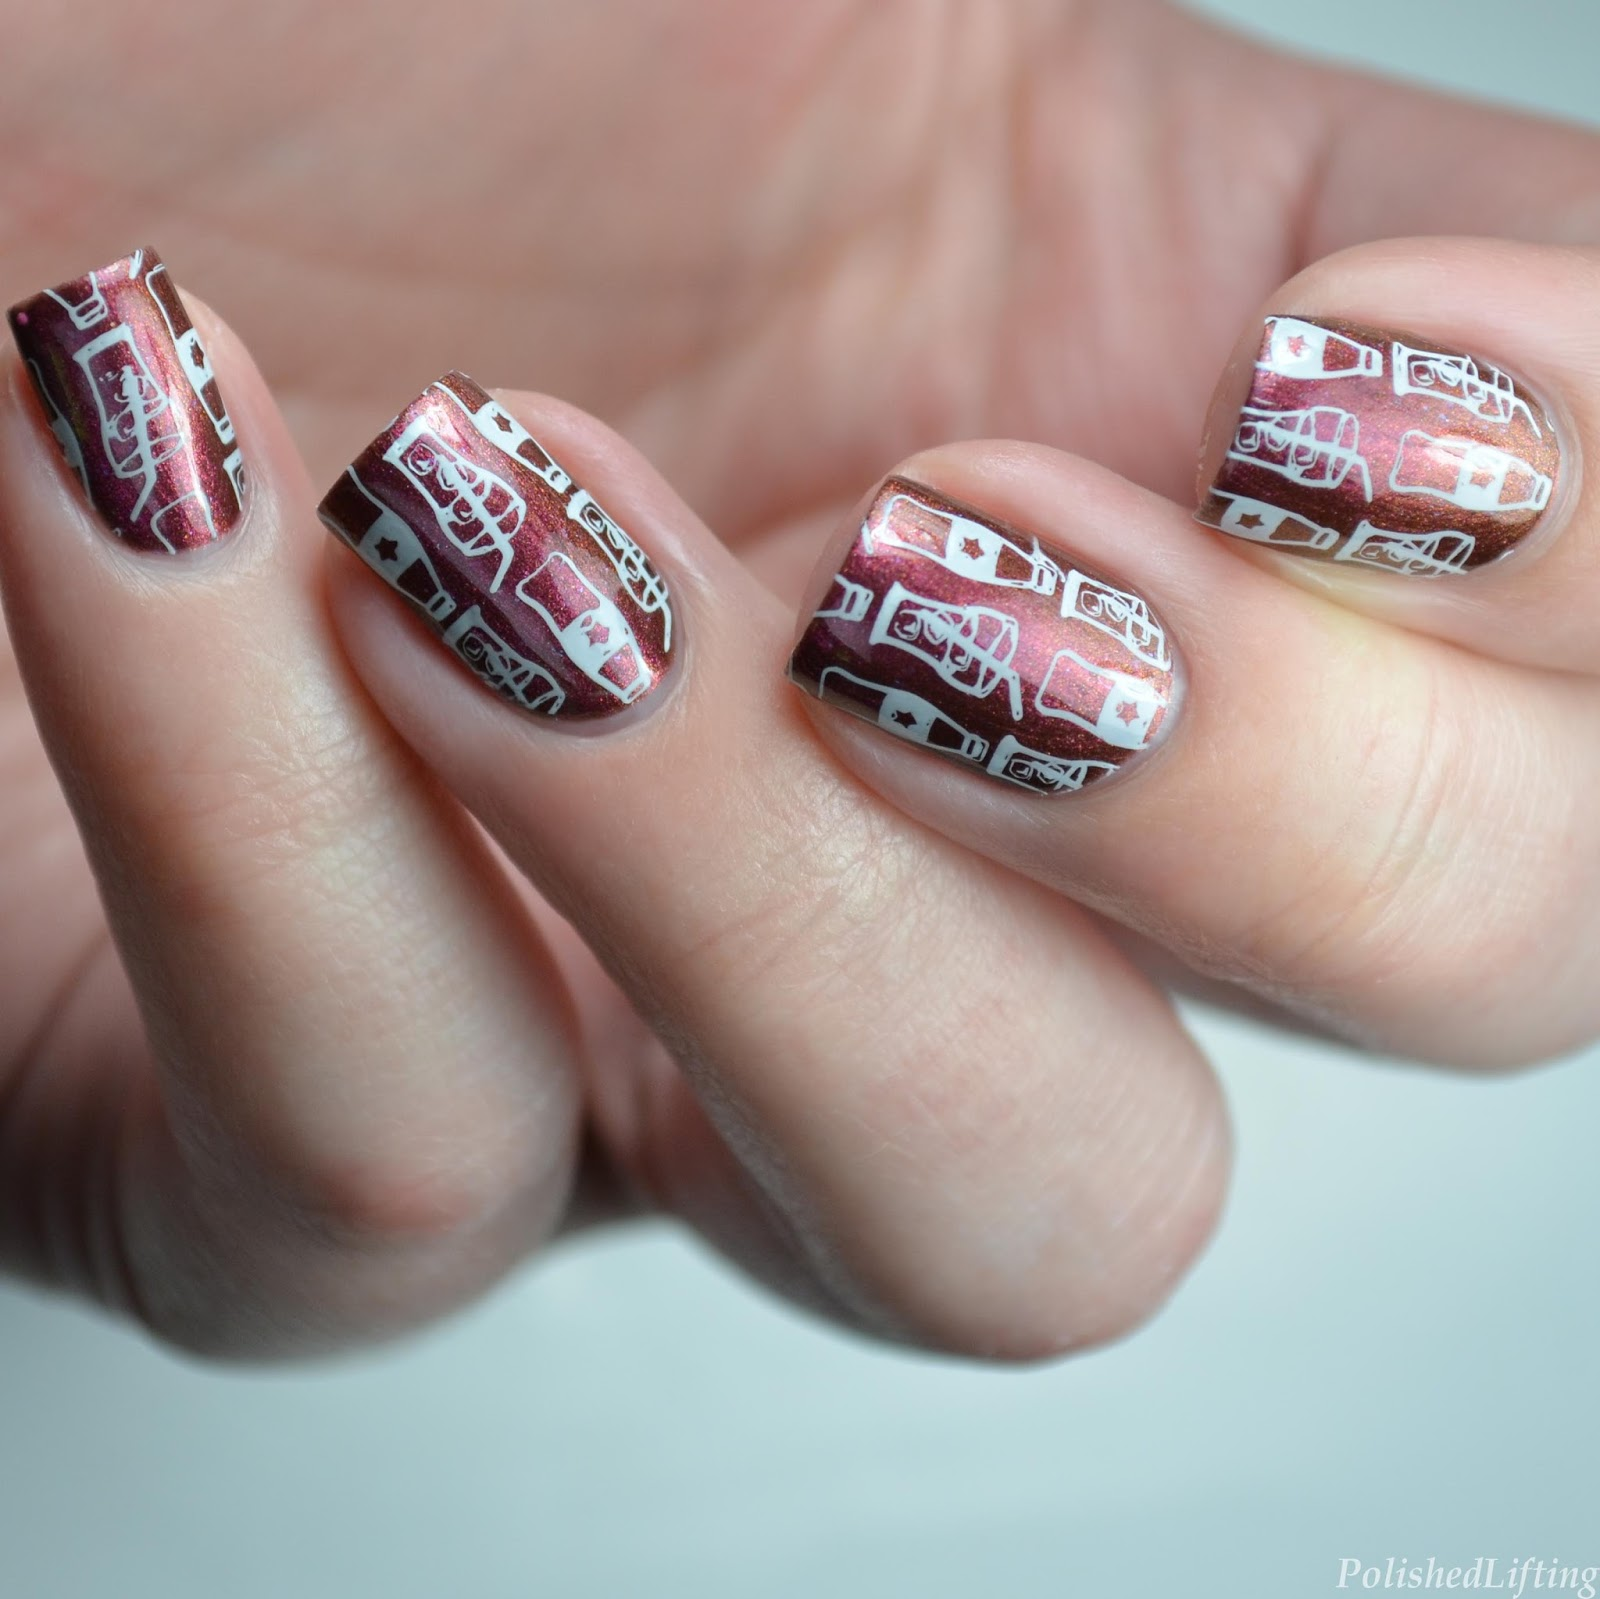 Polished lifting coca cola nail art featuring harunouta joy lacquer coca cola nail art prinsesfo Gallery